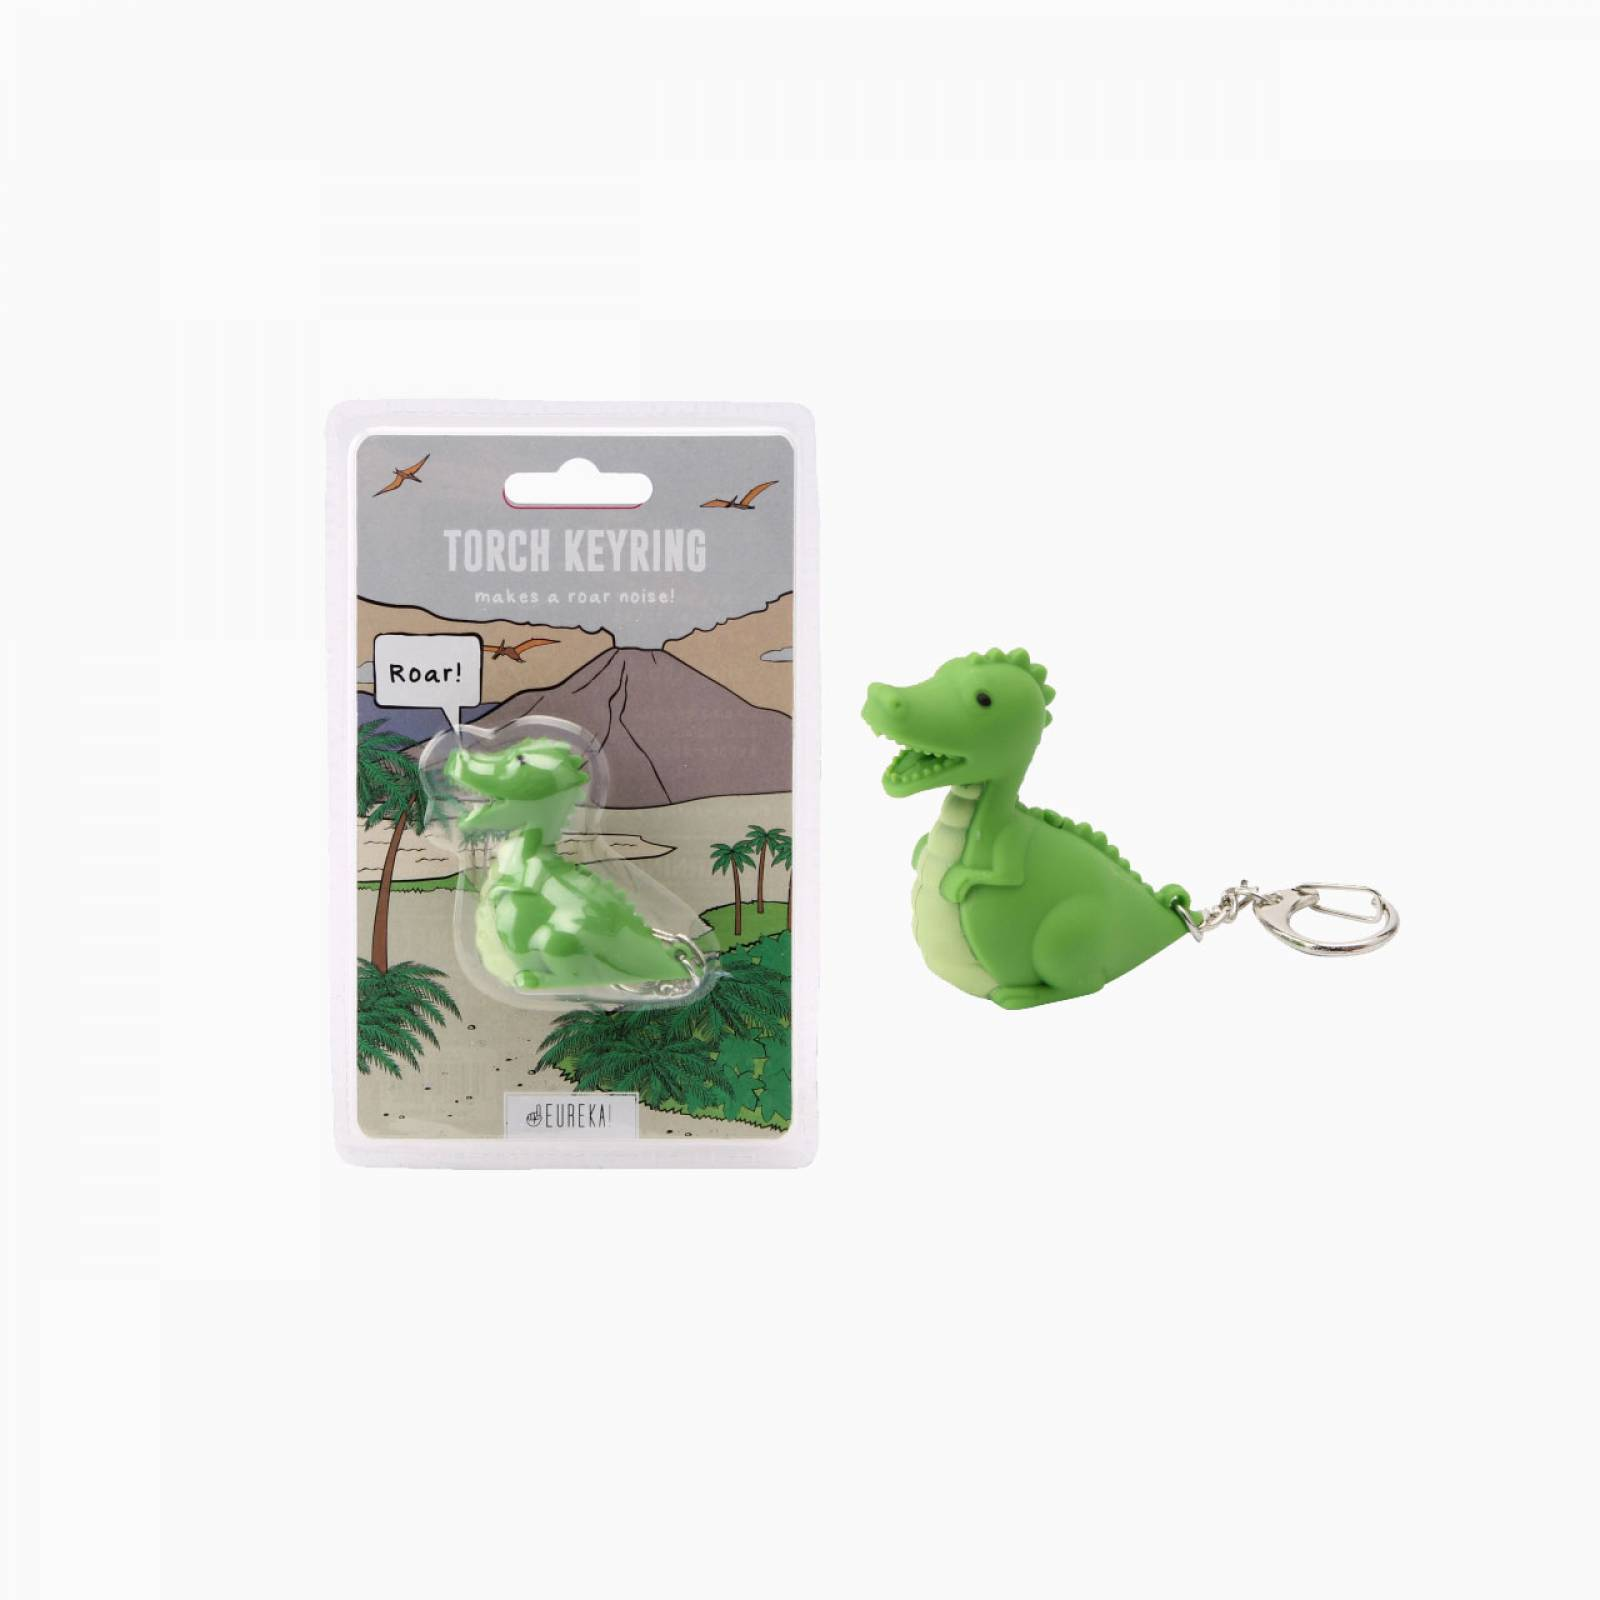 Dinosaur Keyring With Torch And Sound